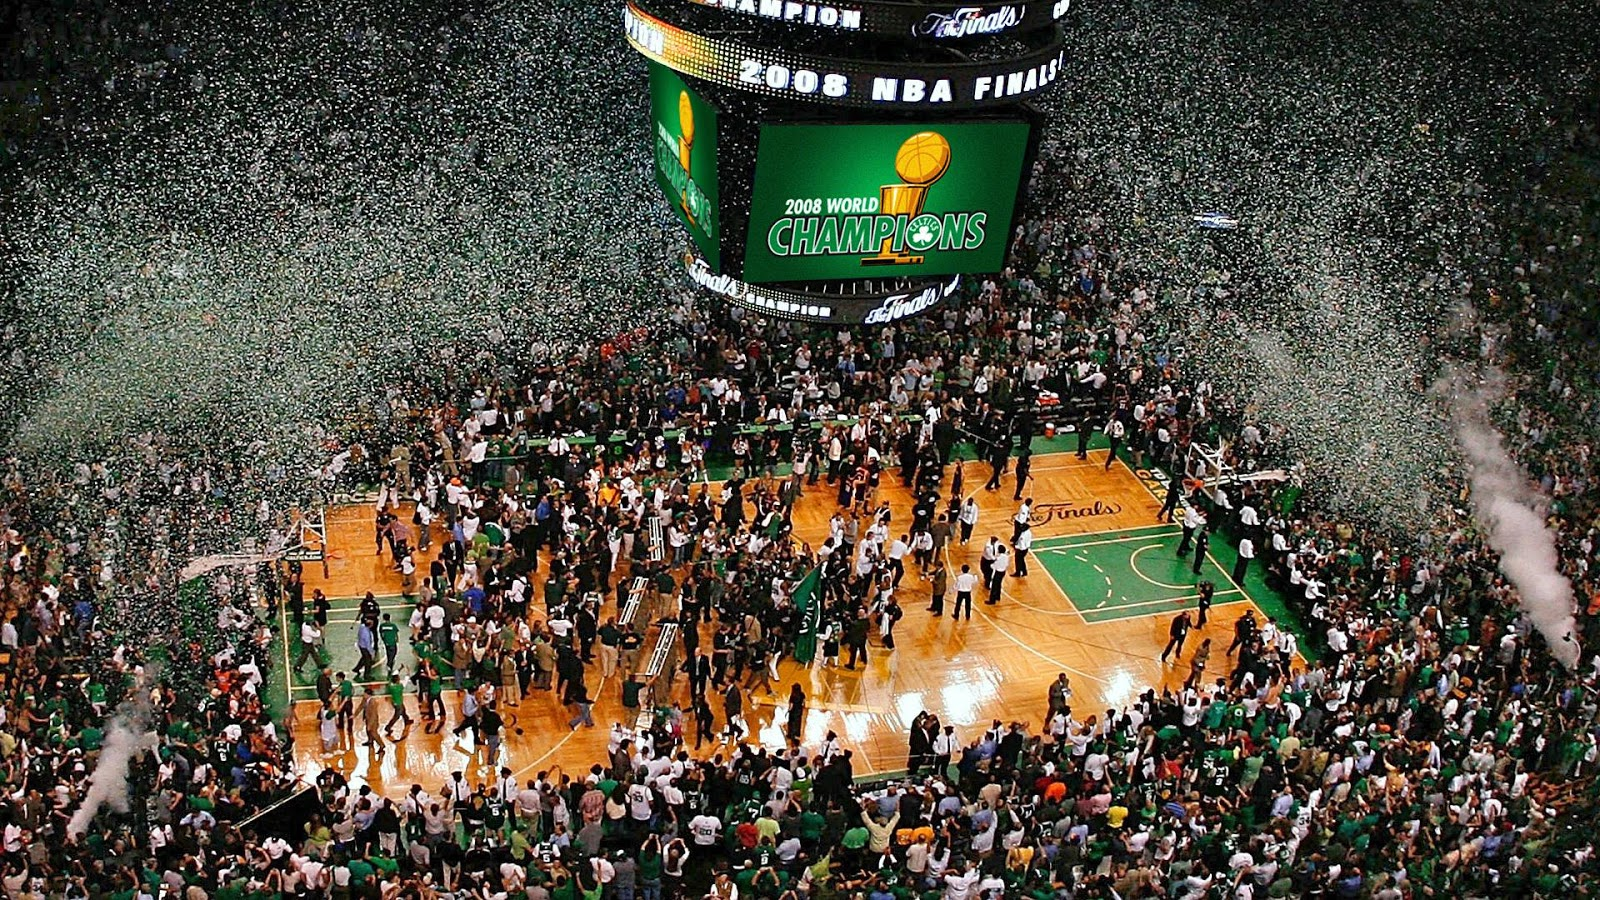 DAR Sports: 2008 NBA Finals- Lakers vs Celtics ...